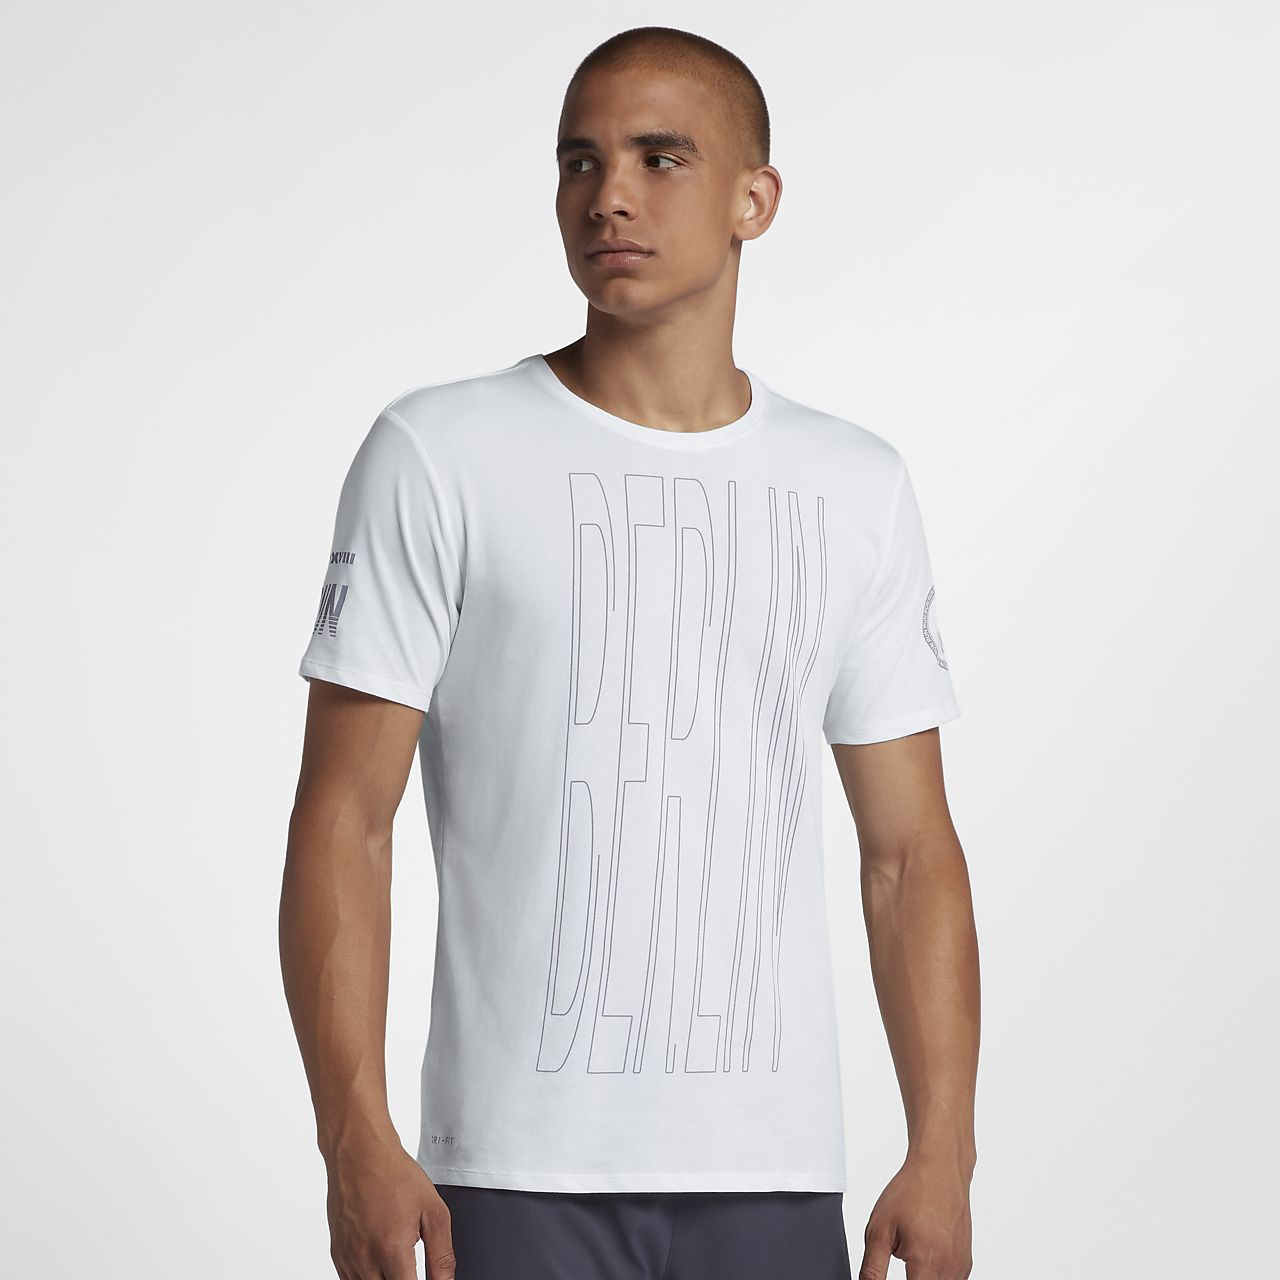 Nike Dri-FIT (Berlin 2018) Men's Running T-Shirt